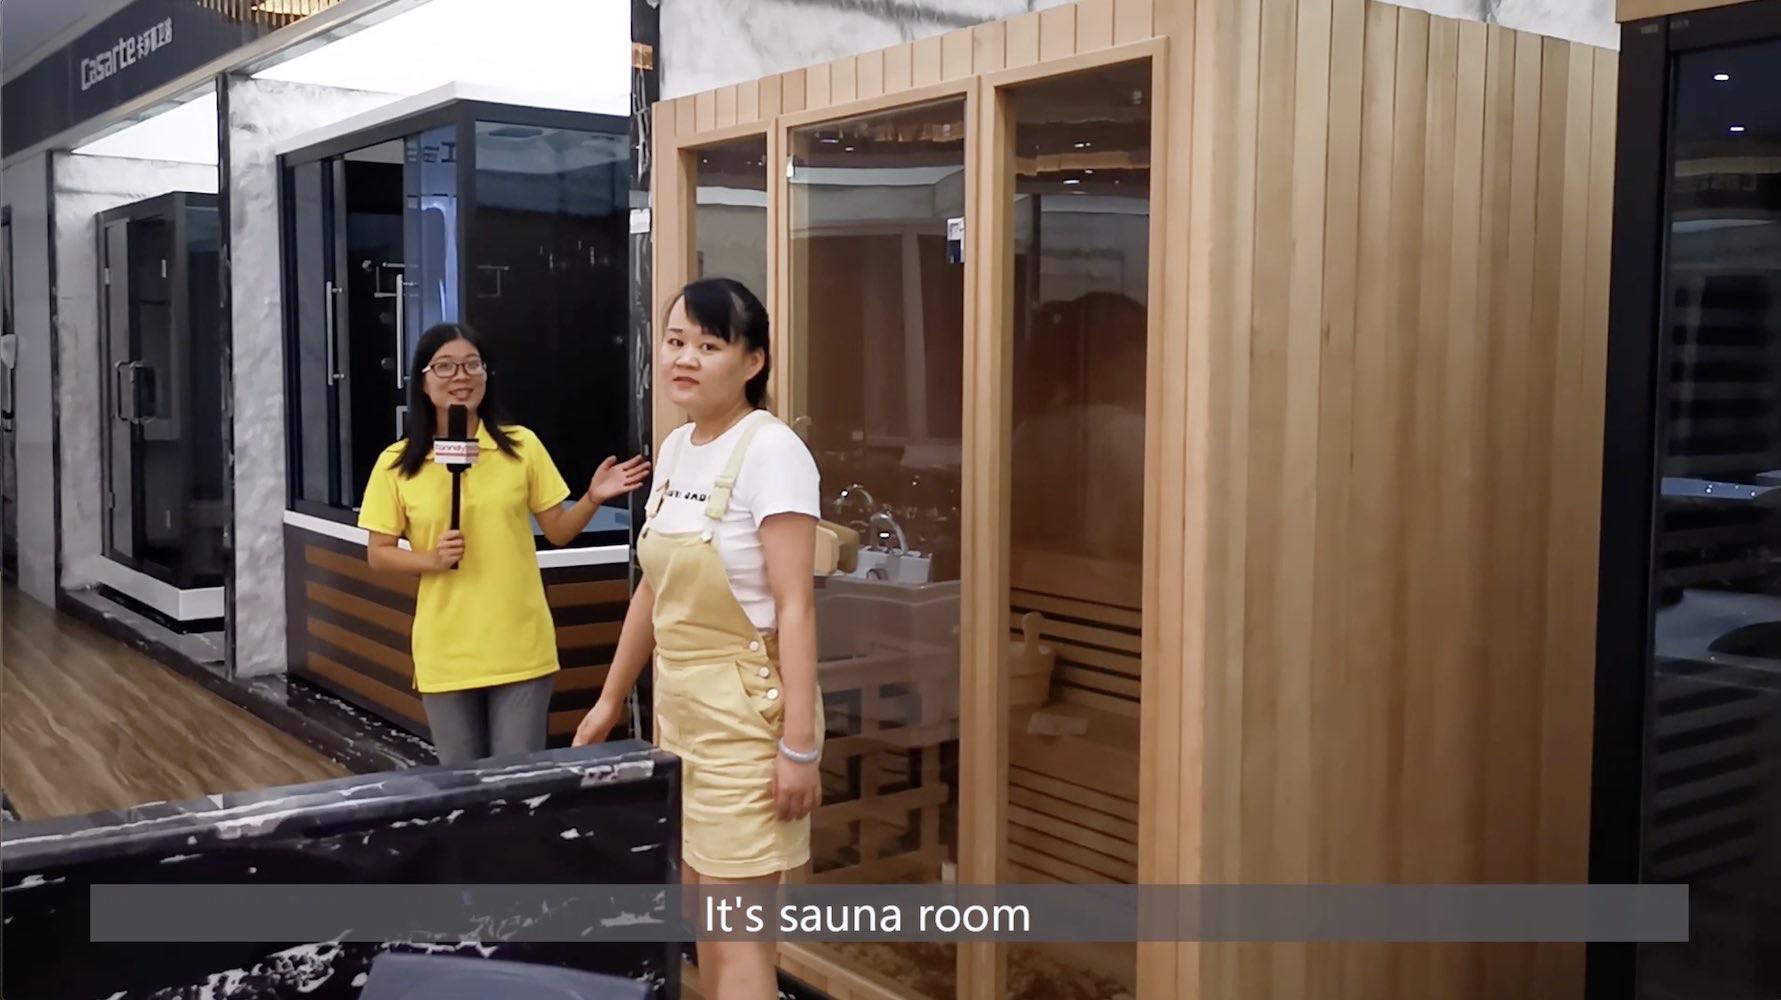 check sauna room in sanitary market